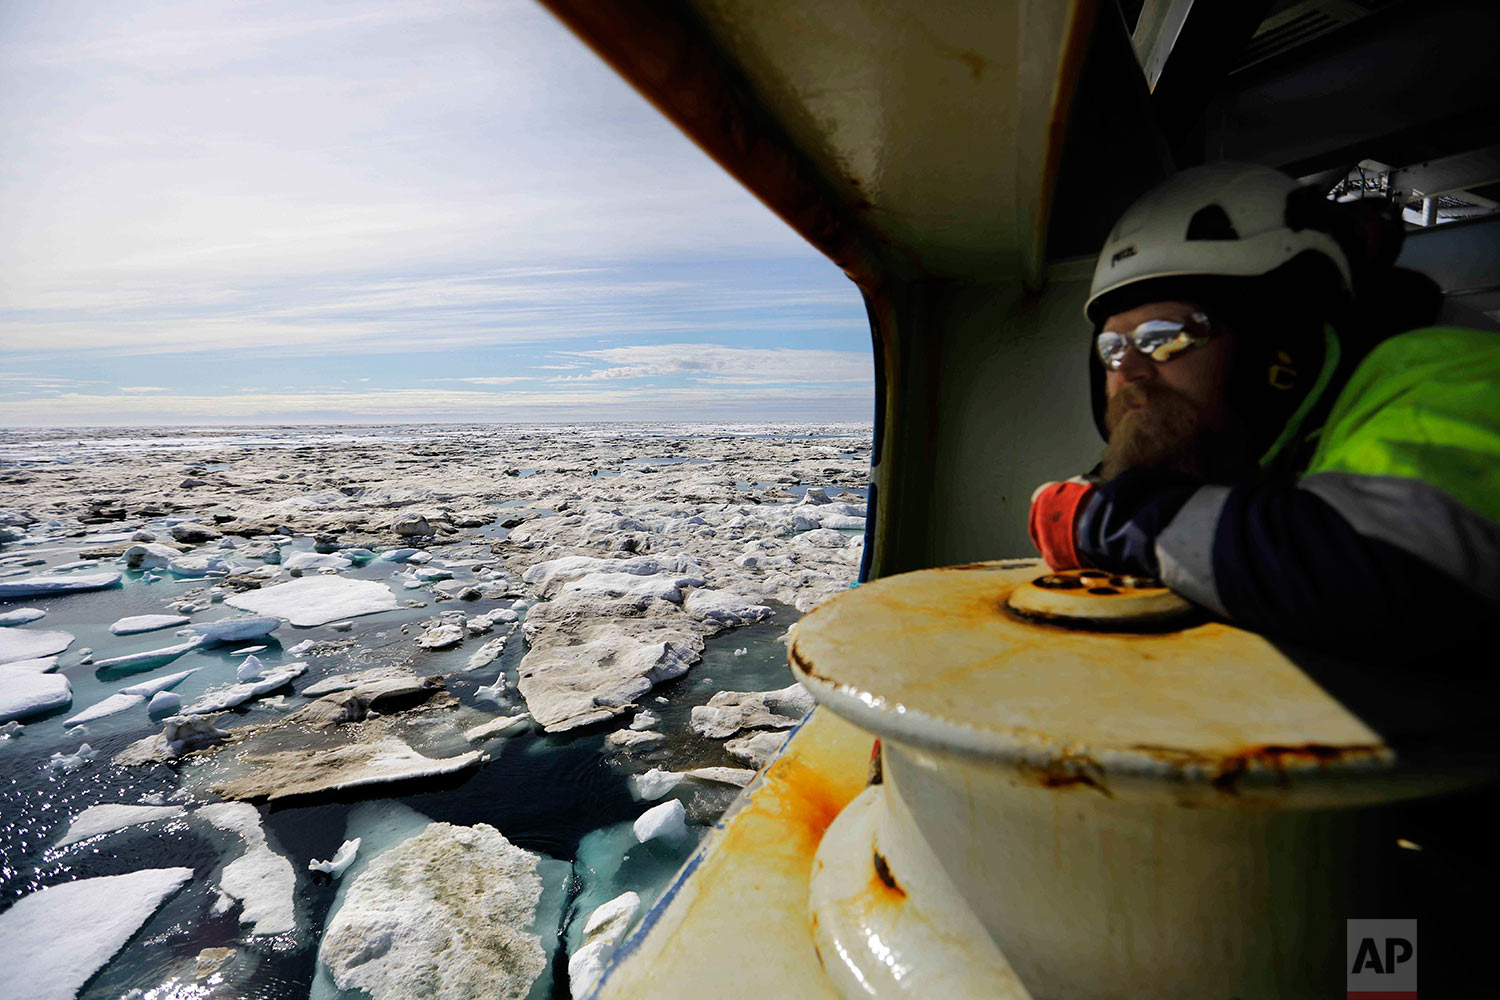 Trainee Jussi Mikkotervo looks out from the bow of the Finnish icebreaker MSV Nordica as it sails through ice floating on the Beaufort Sea off the coast of Alaska while traversing the Arctic's Northwest Passage, Sunday, July 16, 2017. Although the passage presents an attractive shortcut for maritime traffic between the Pacific and Atlantic oceans, only a dozen or two vessels attempt to navigate the poorly charted Canadian Arctic Archipelago during the brief summer window each year. (AP Photo/David Goldman)